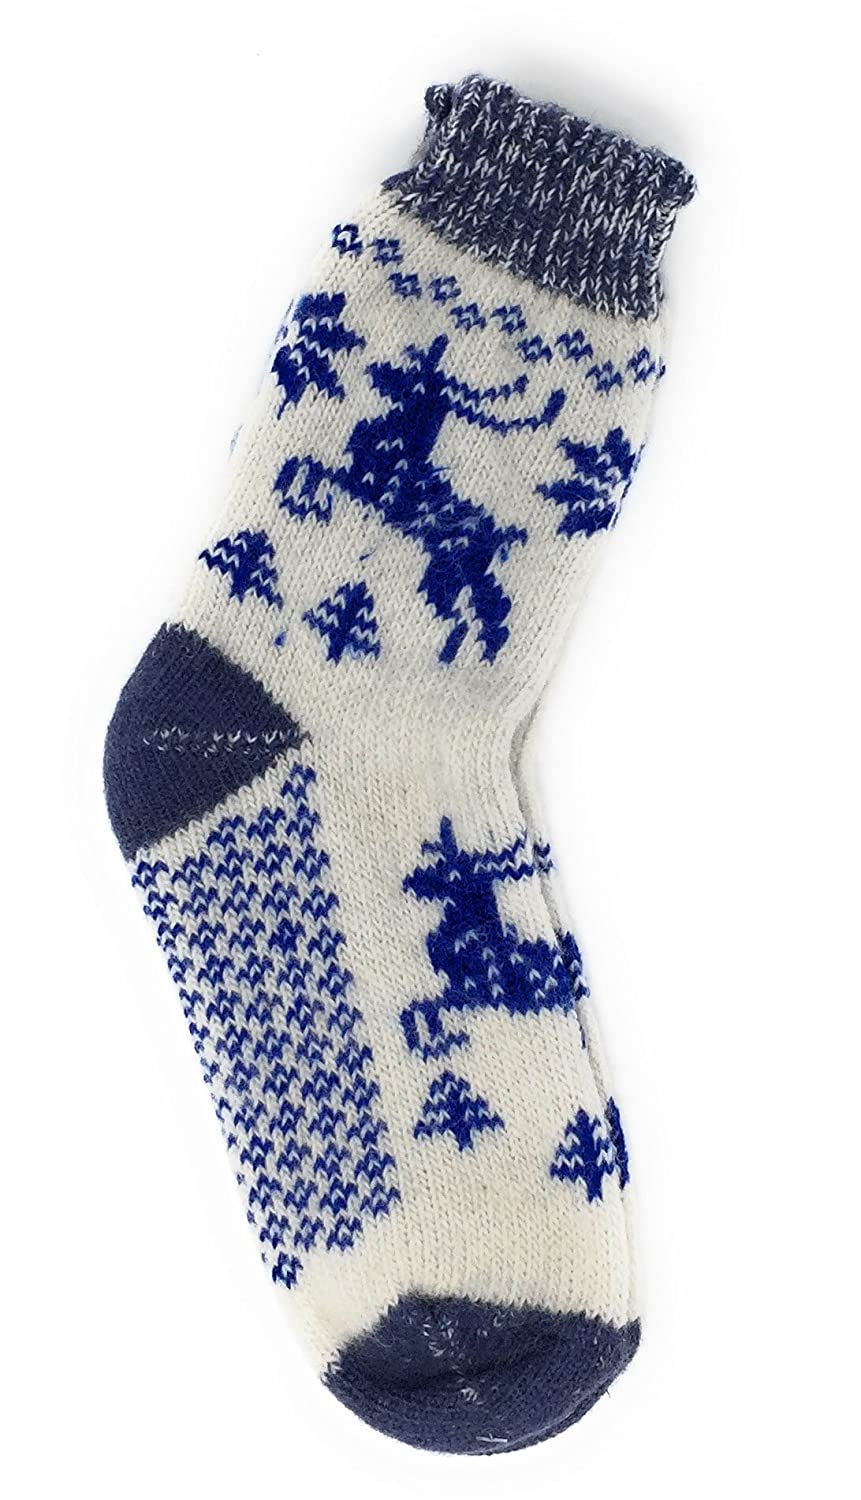 Lambswool Reindeer Design Socks for Teens and Mums by Granny's Knitwear Granny' s Knitwear